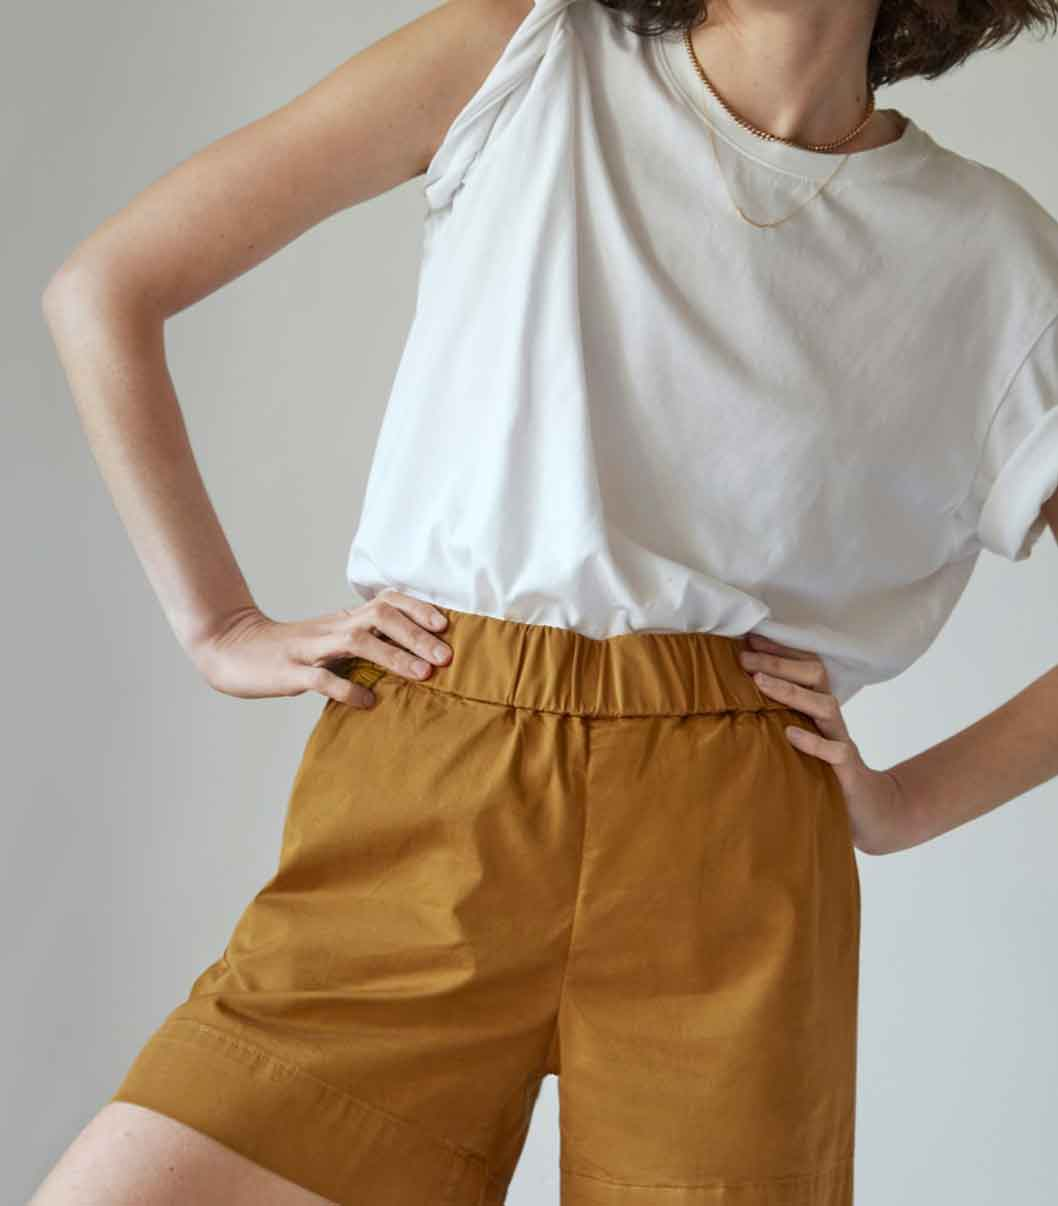 EVERLANE US SUSTAINABLE CLOTHING BRAND good fashion guide ECOLOOKBOOK